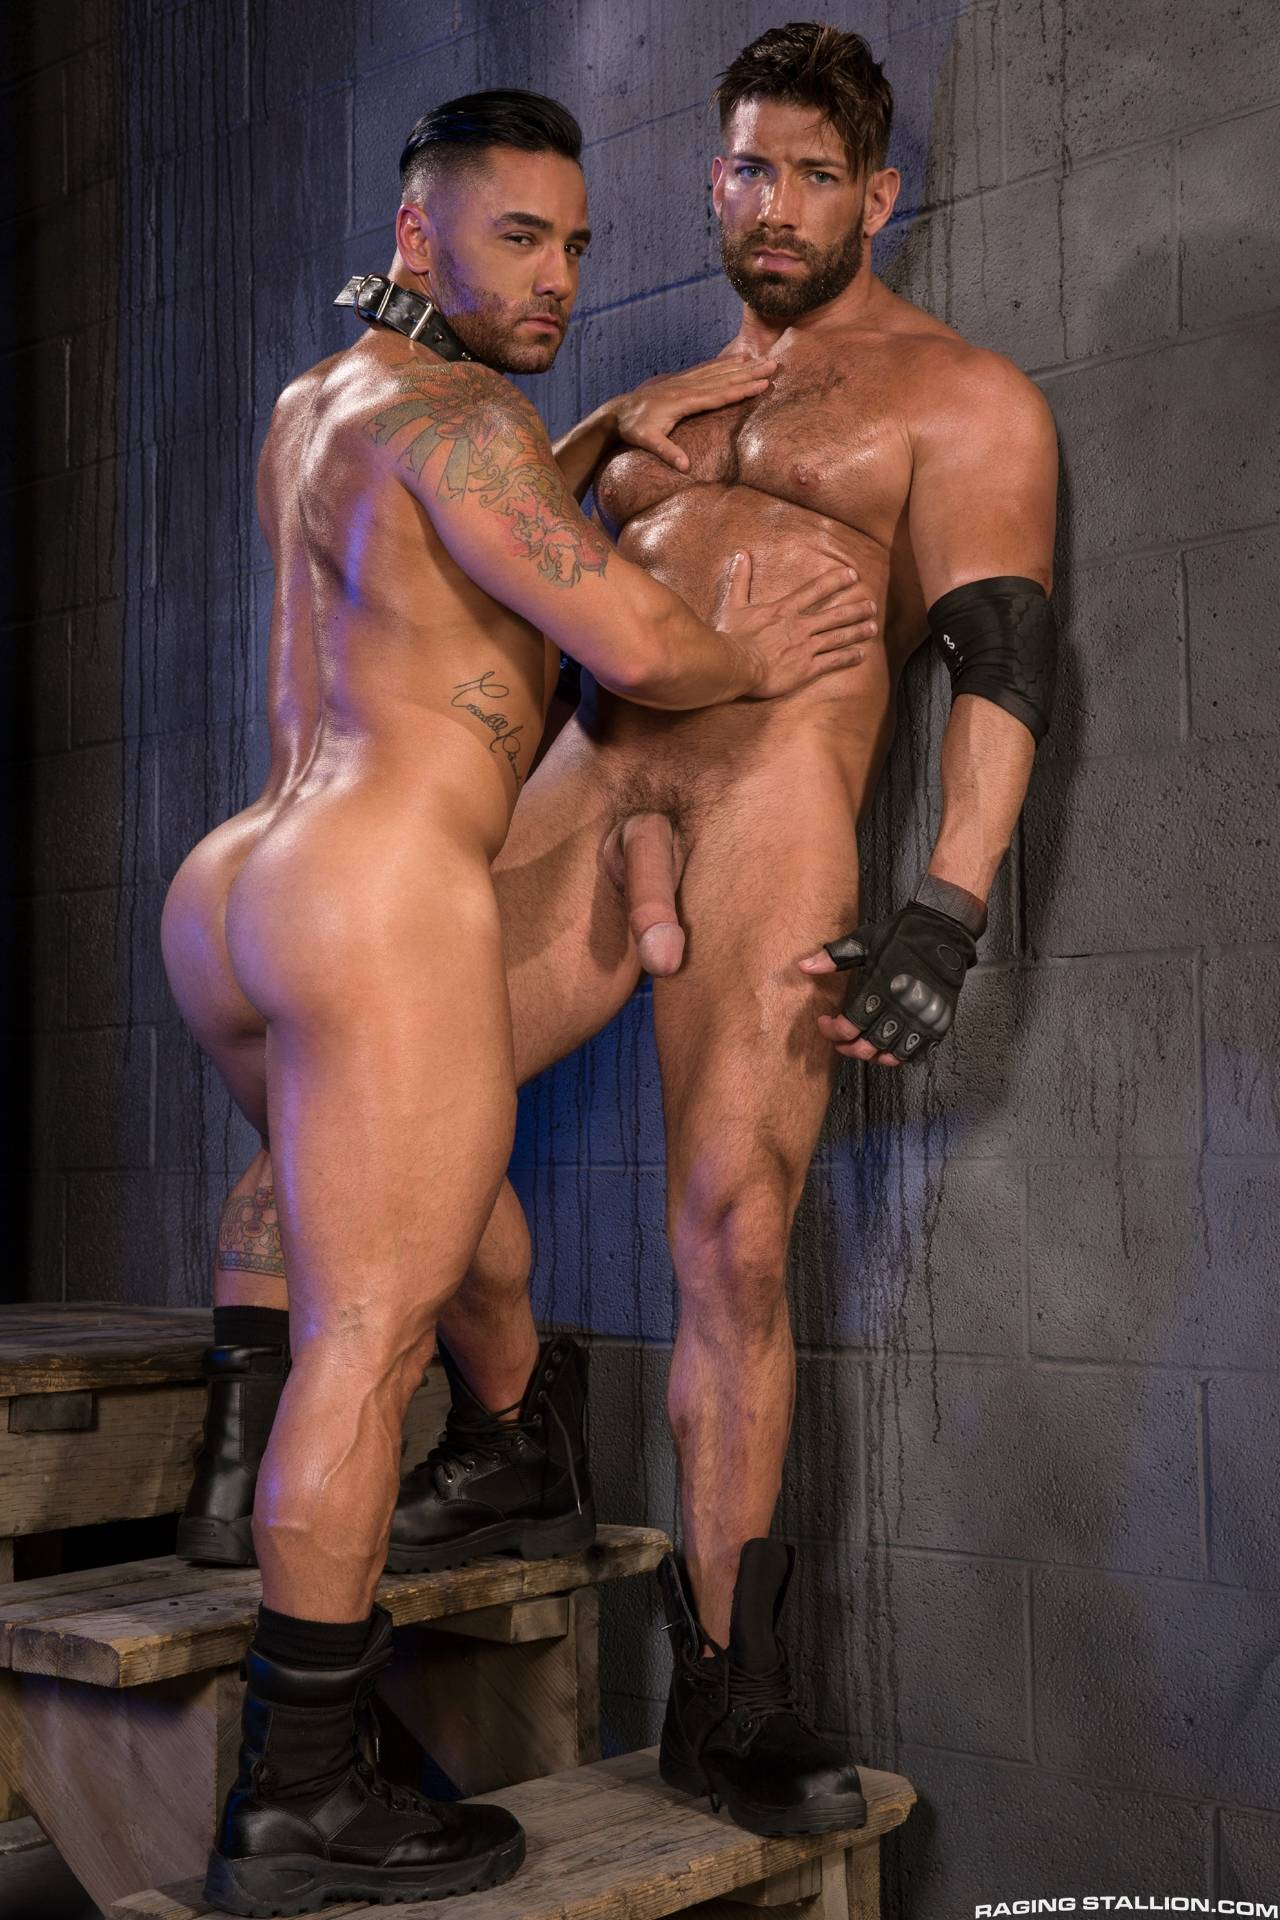 Bruno bernal takes it after throating cock 6